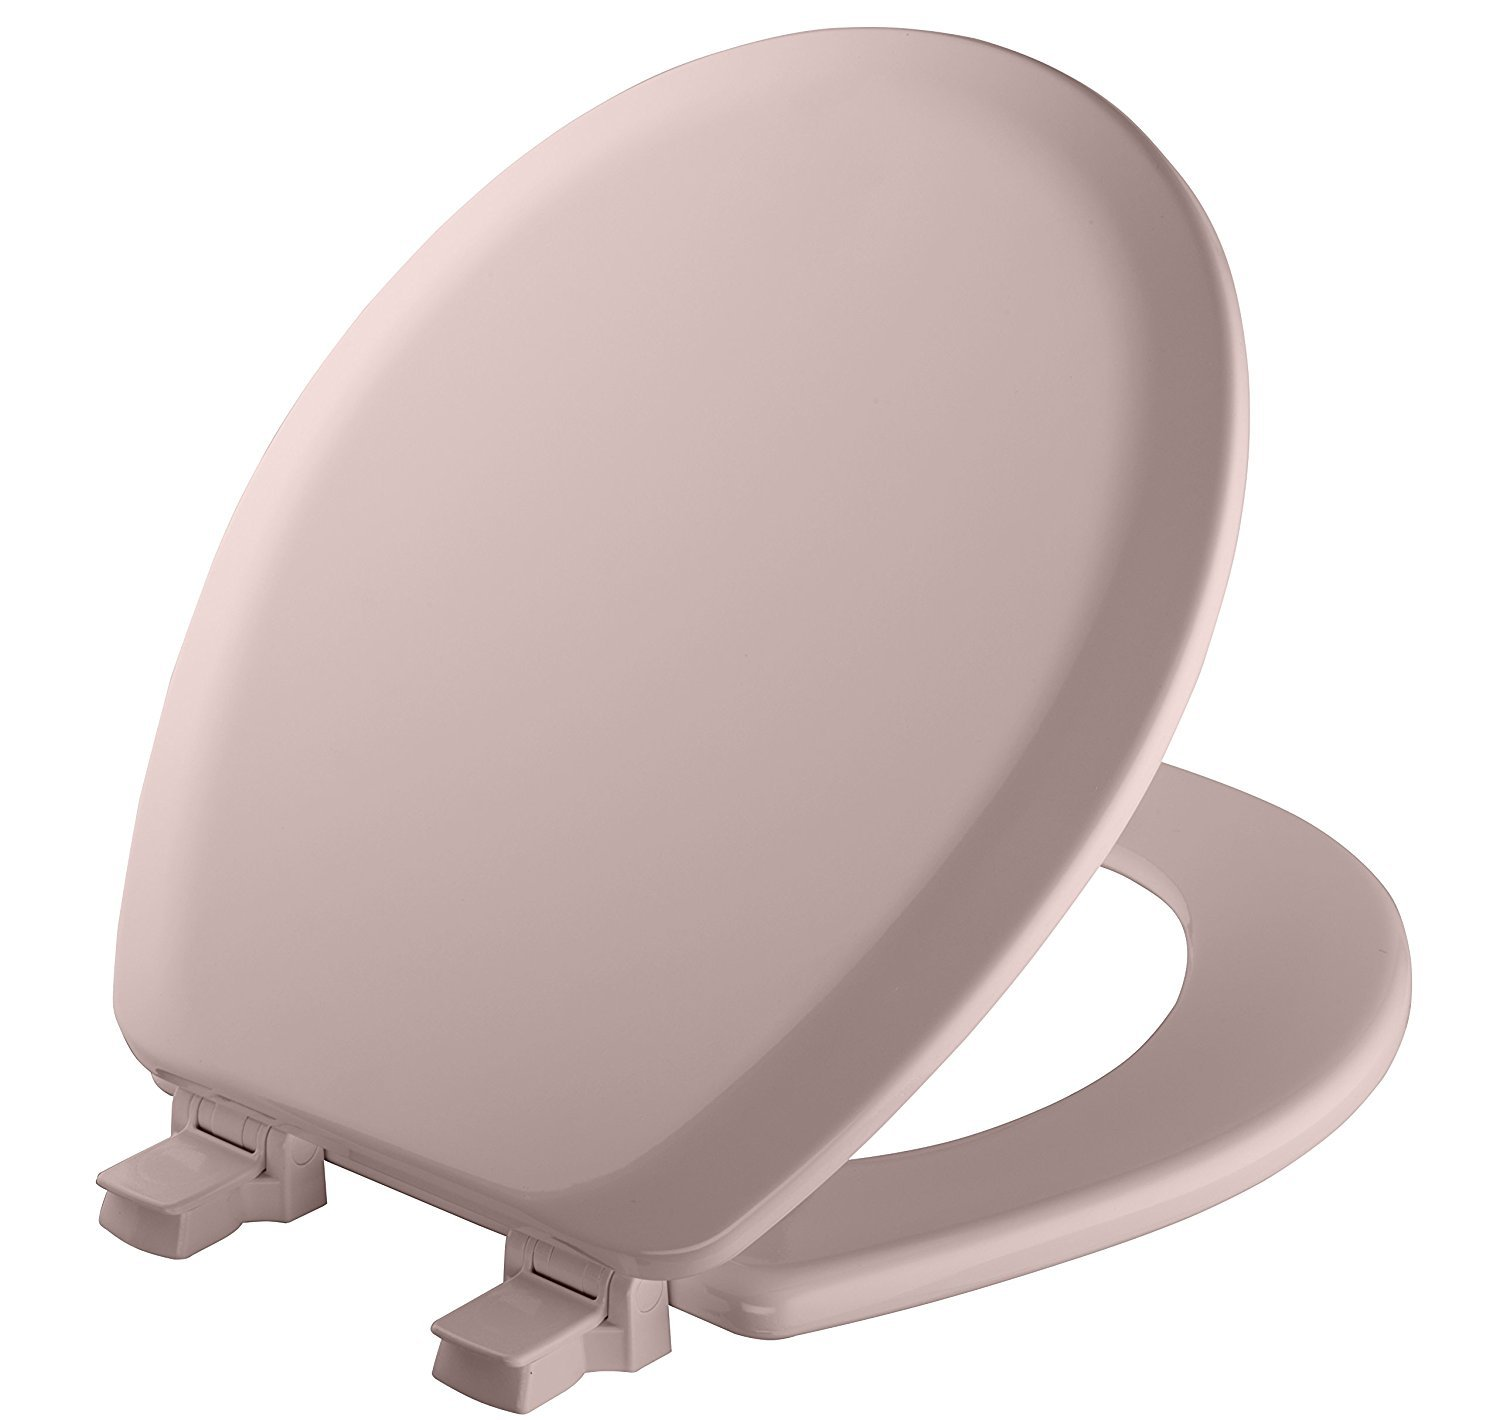 Mayfair Molded Wood Toilet Seat with Easy Clean & Change Hinges and STA-TITE Seat Fastening System, Round, Pink, 41EC 023